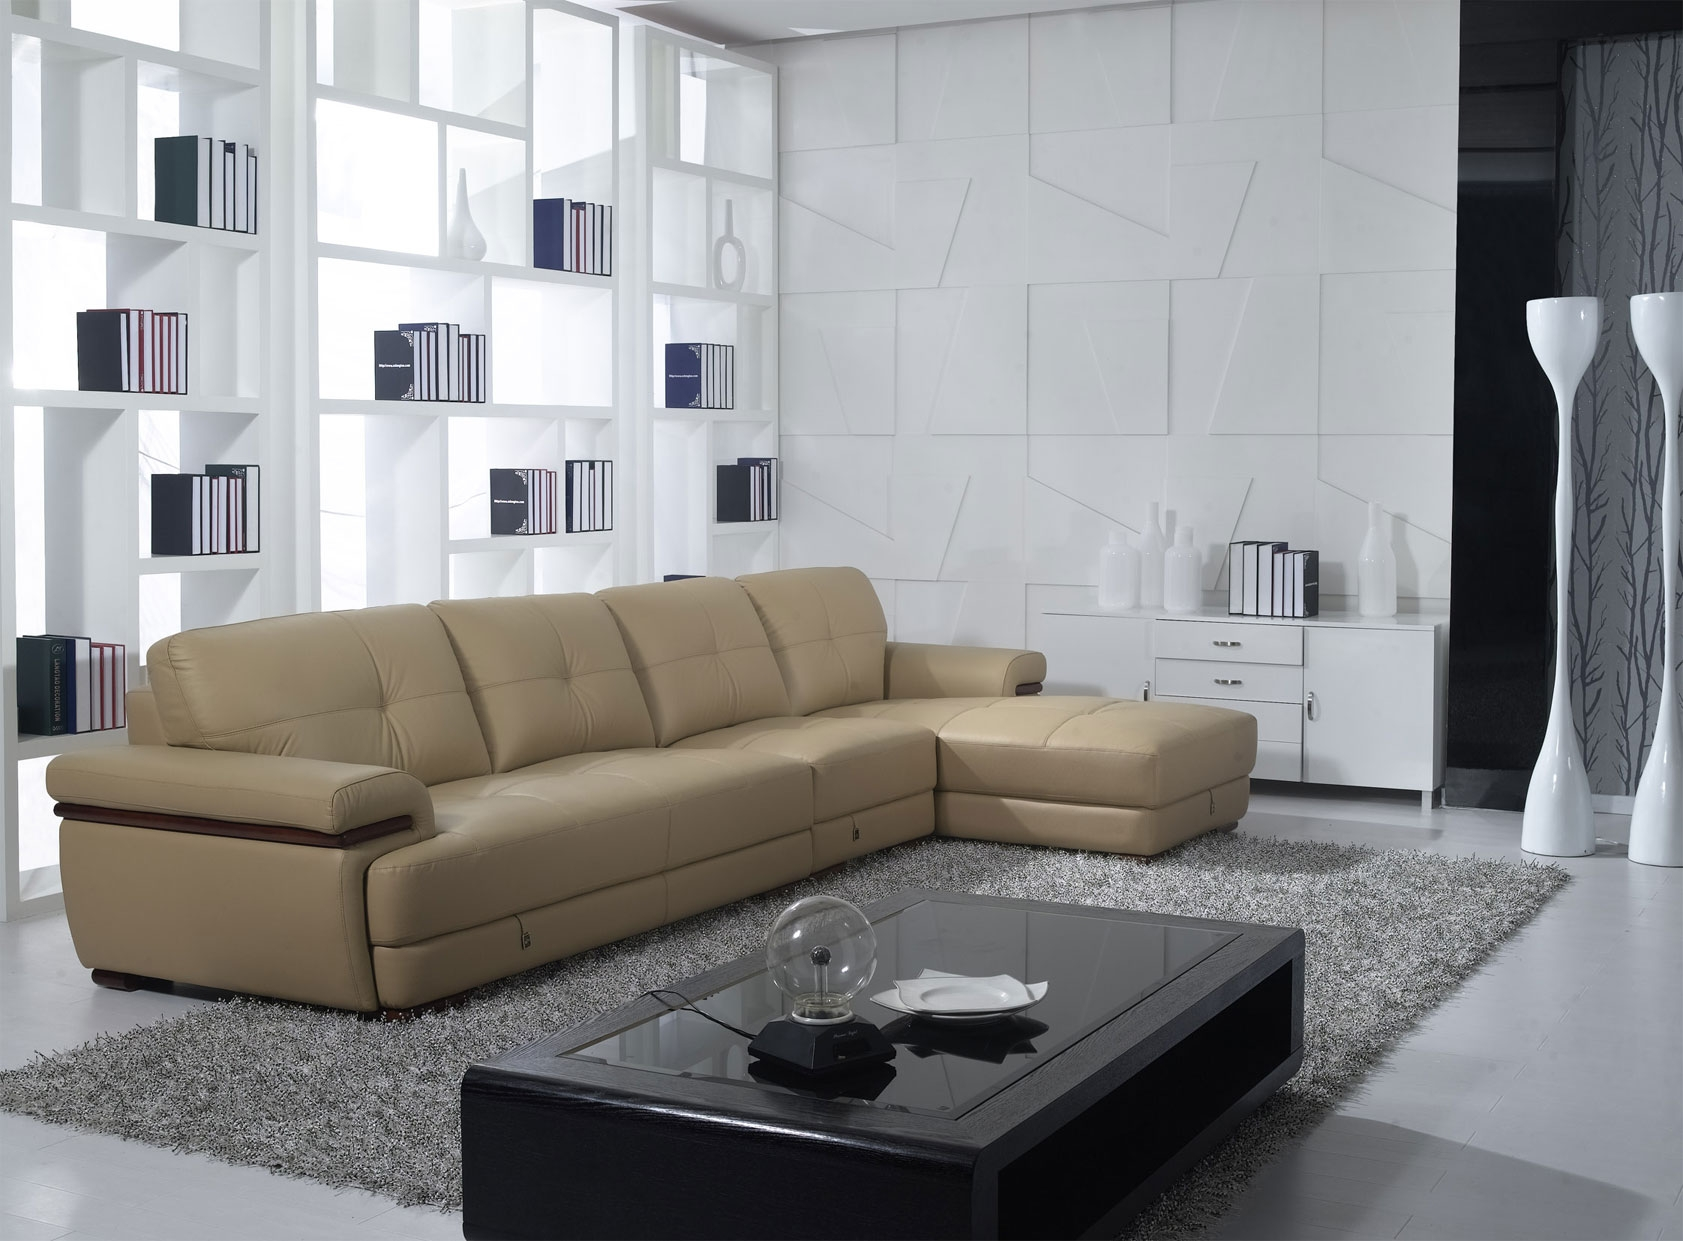 Quality Sectional Sofas All Information Sofa Desain Ideas In Quality Sectional Sofa (#10 of 12)